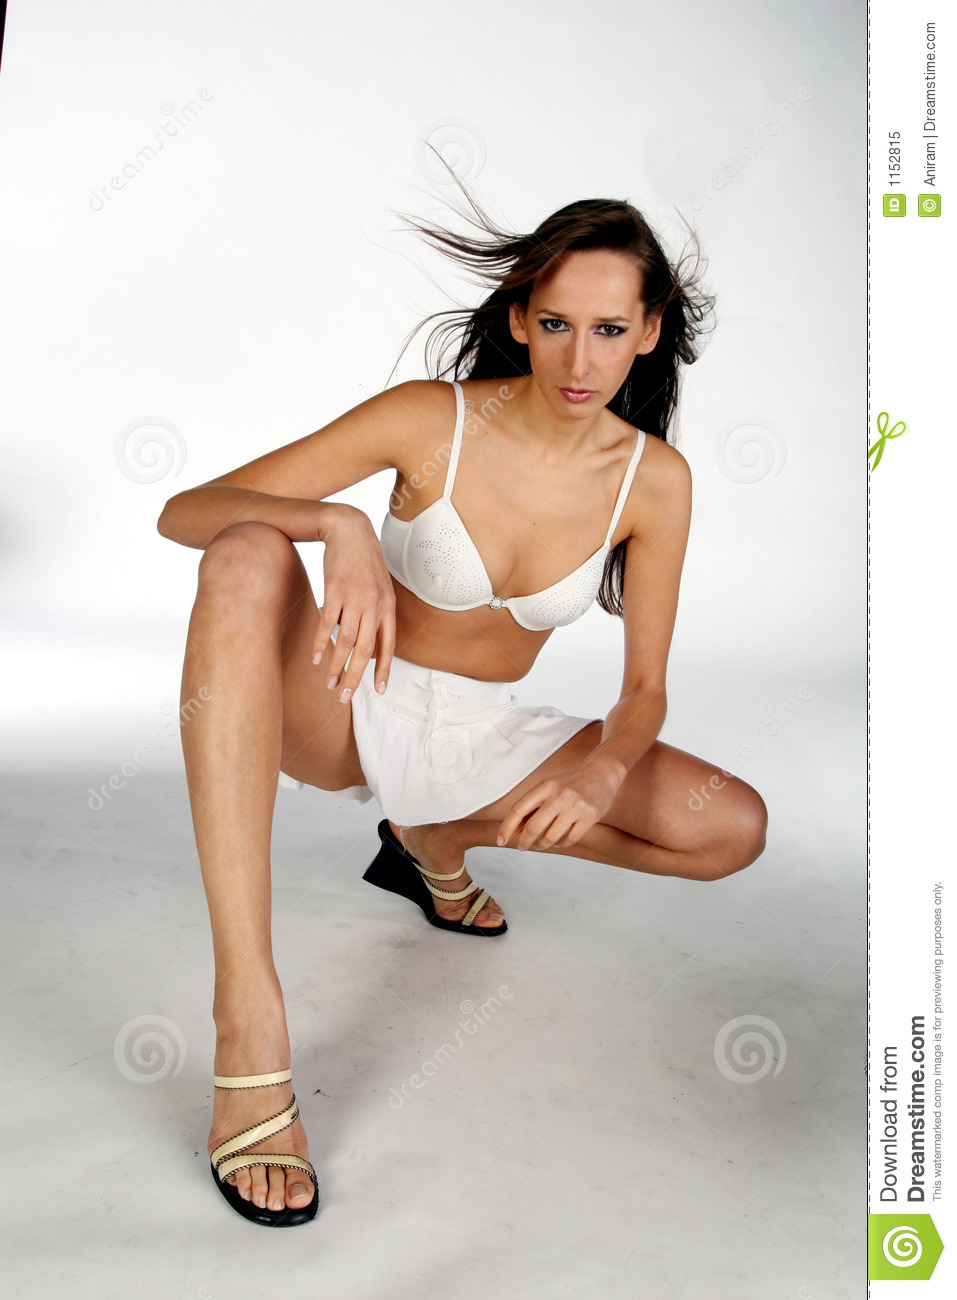 Woman In Skirt Royalty Free Stock Photo - Image: 1152815